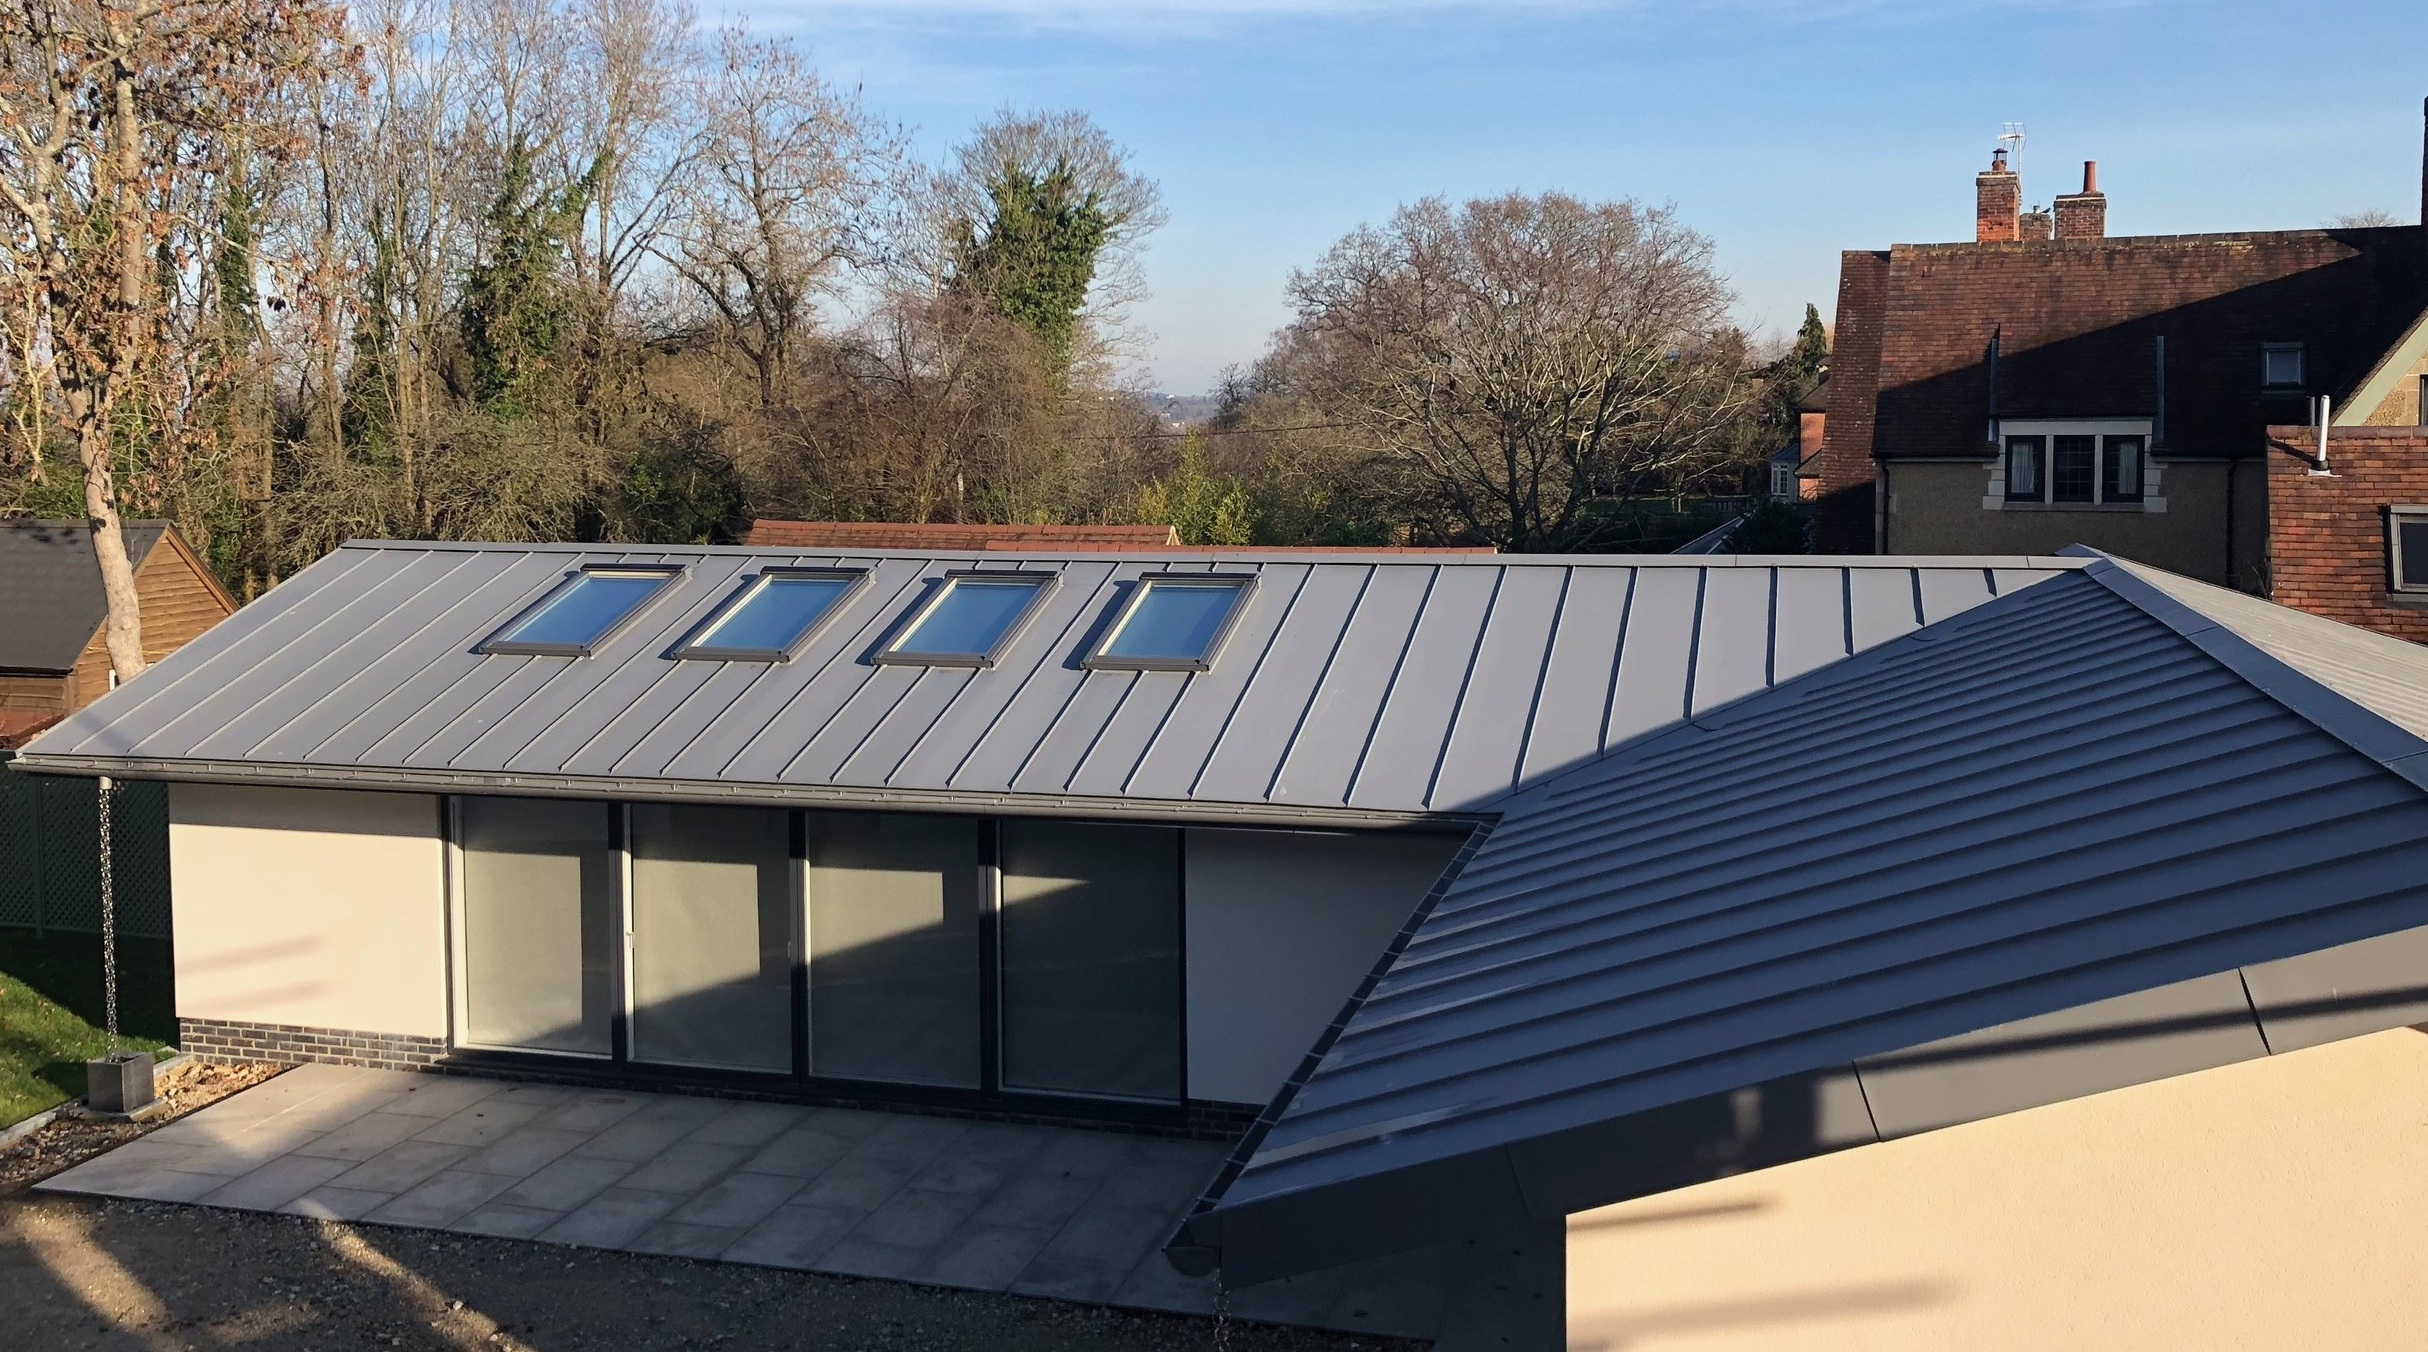 HINKSEY HILL HOUSE - The large extension and annex building at this big renovation project in oxford were completed in 2019. VM quartz zinc was used on both the renovation of the old house as well as on the outbuildings and porch.